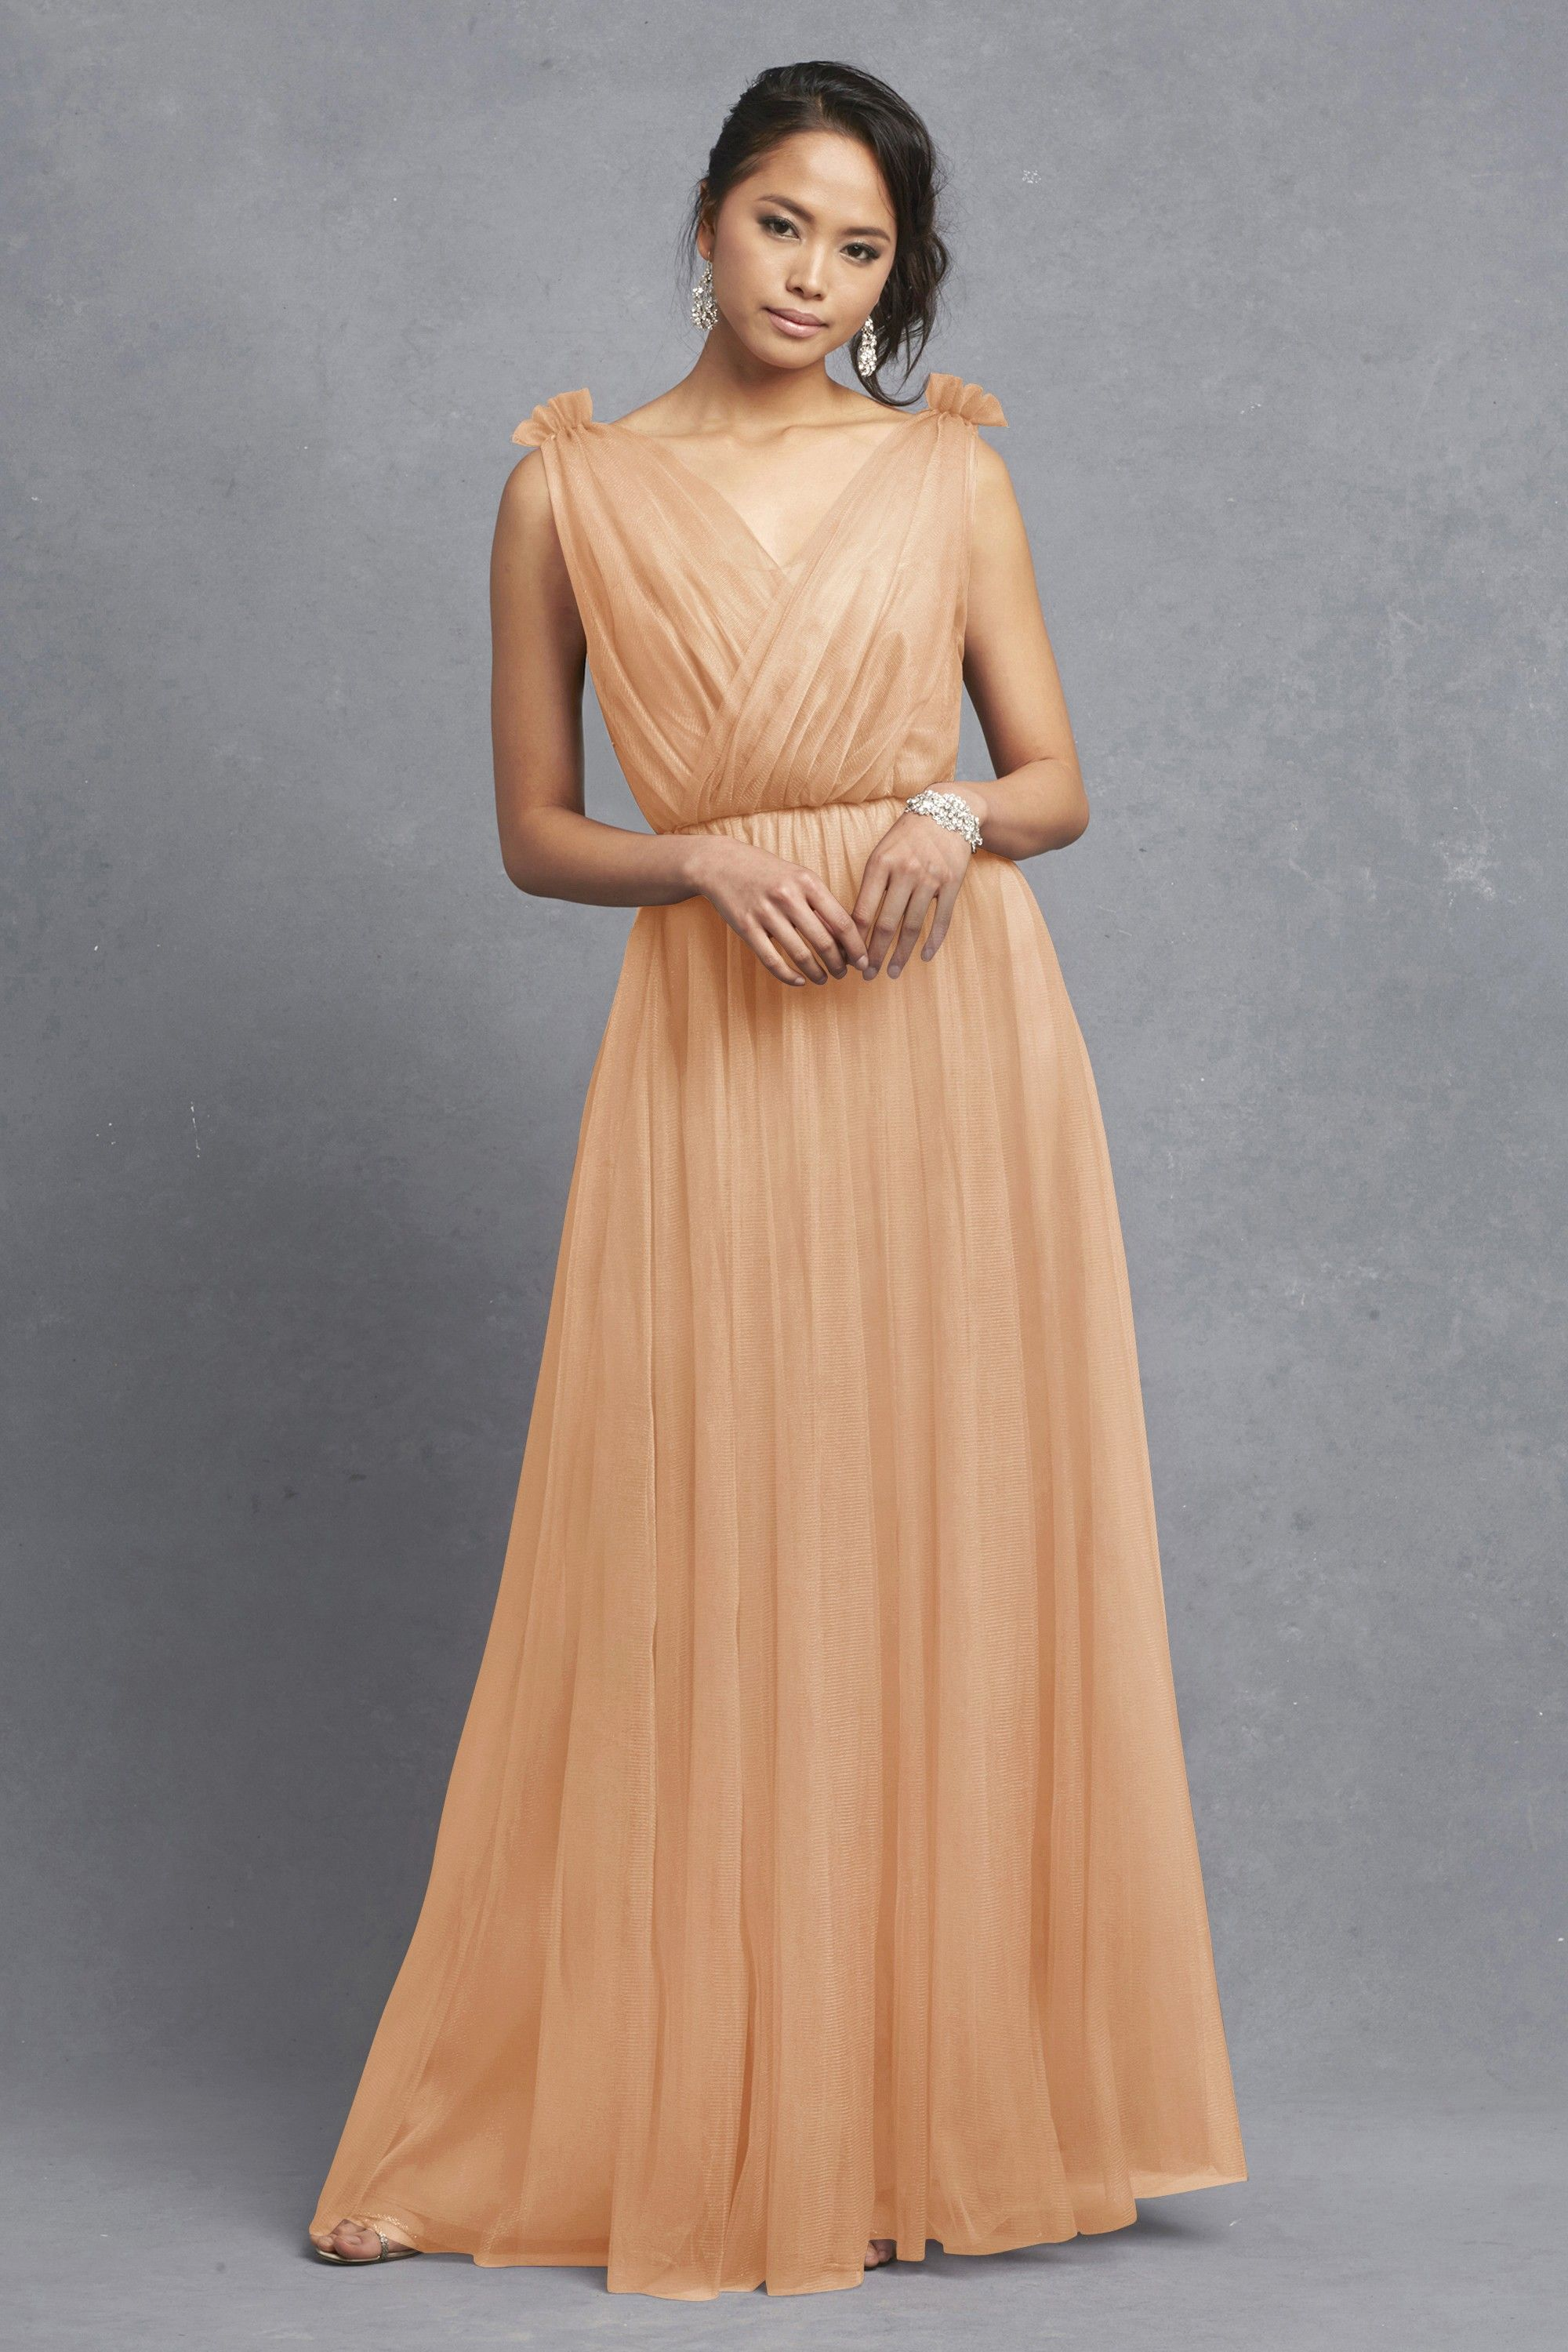 Emmy apricot main otros fdo pinterest donna morgan and search used wedding dresses preowned wedding gowns for sale ombrellifo Images